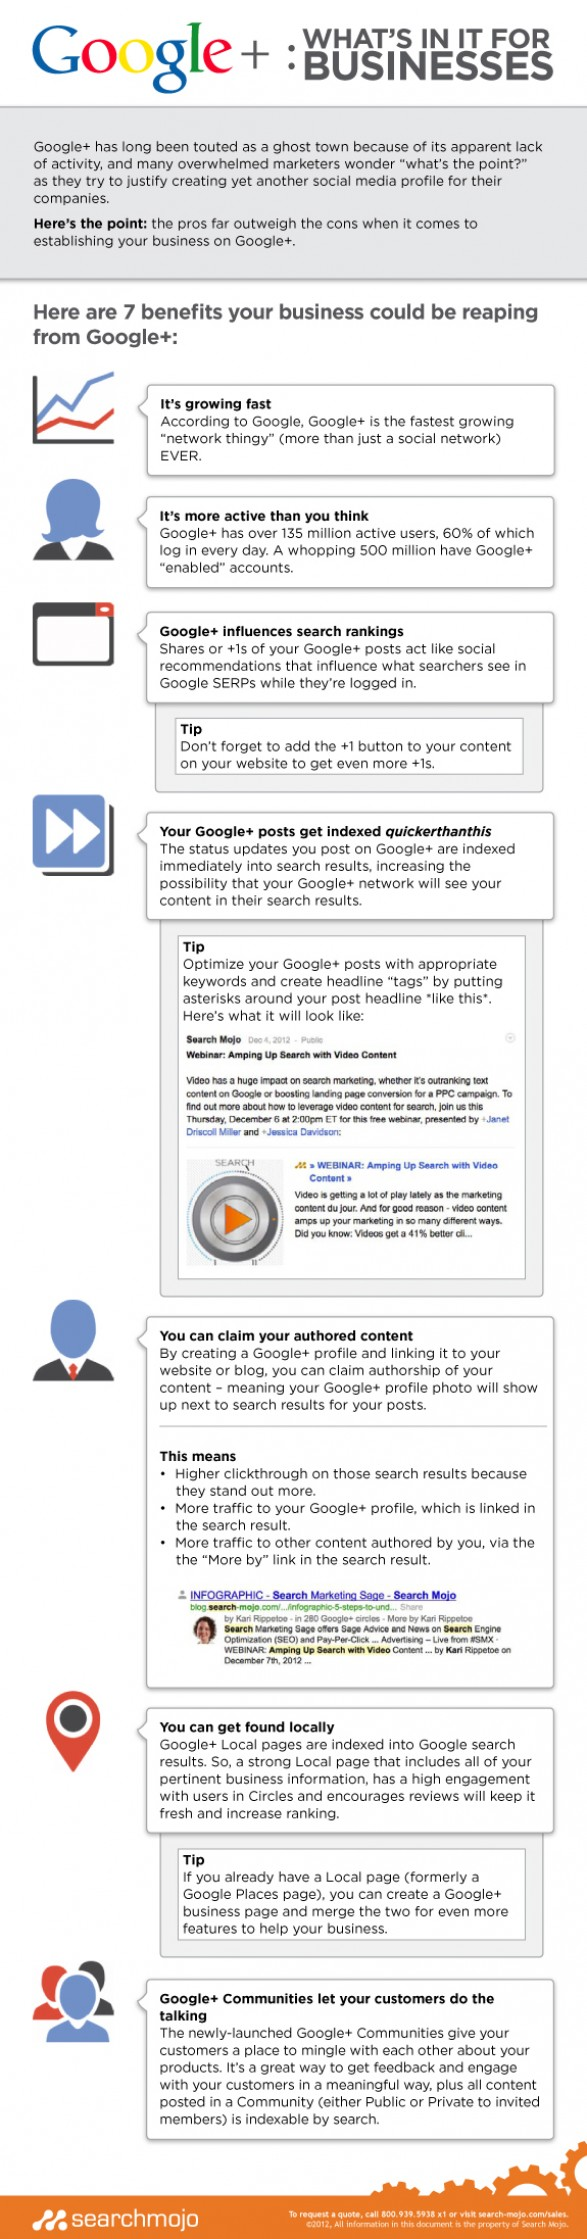 google-whats-in-it-for-businesses